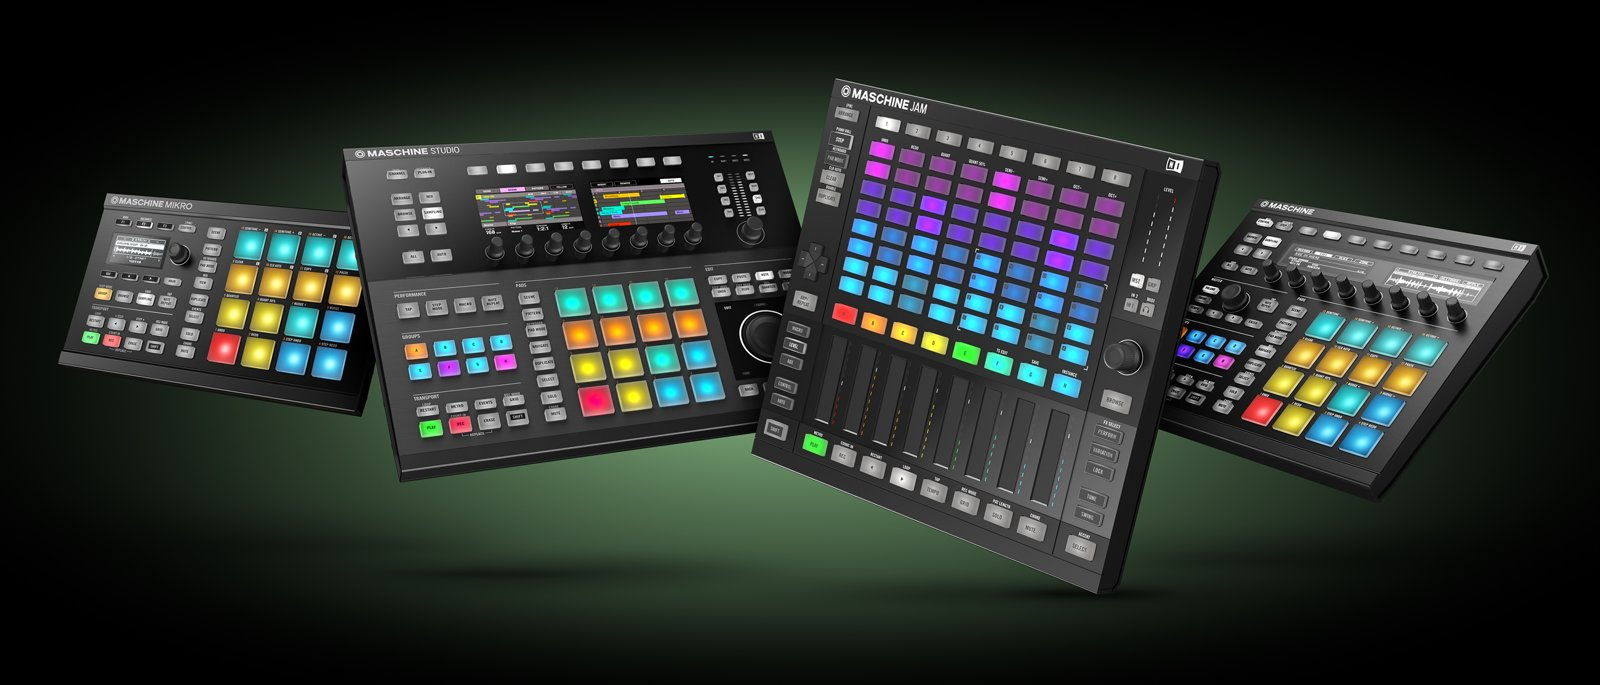 img-ce-full-maschine-jam_overview_07-the-world-of-maschine_01-cd2449b833ec157caf42446c1916be76-d